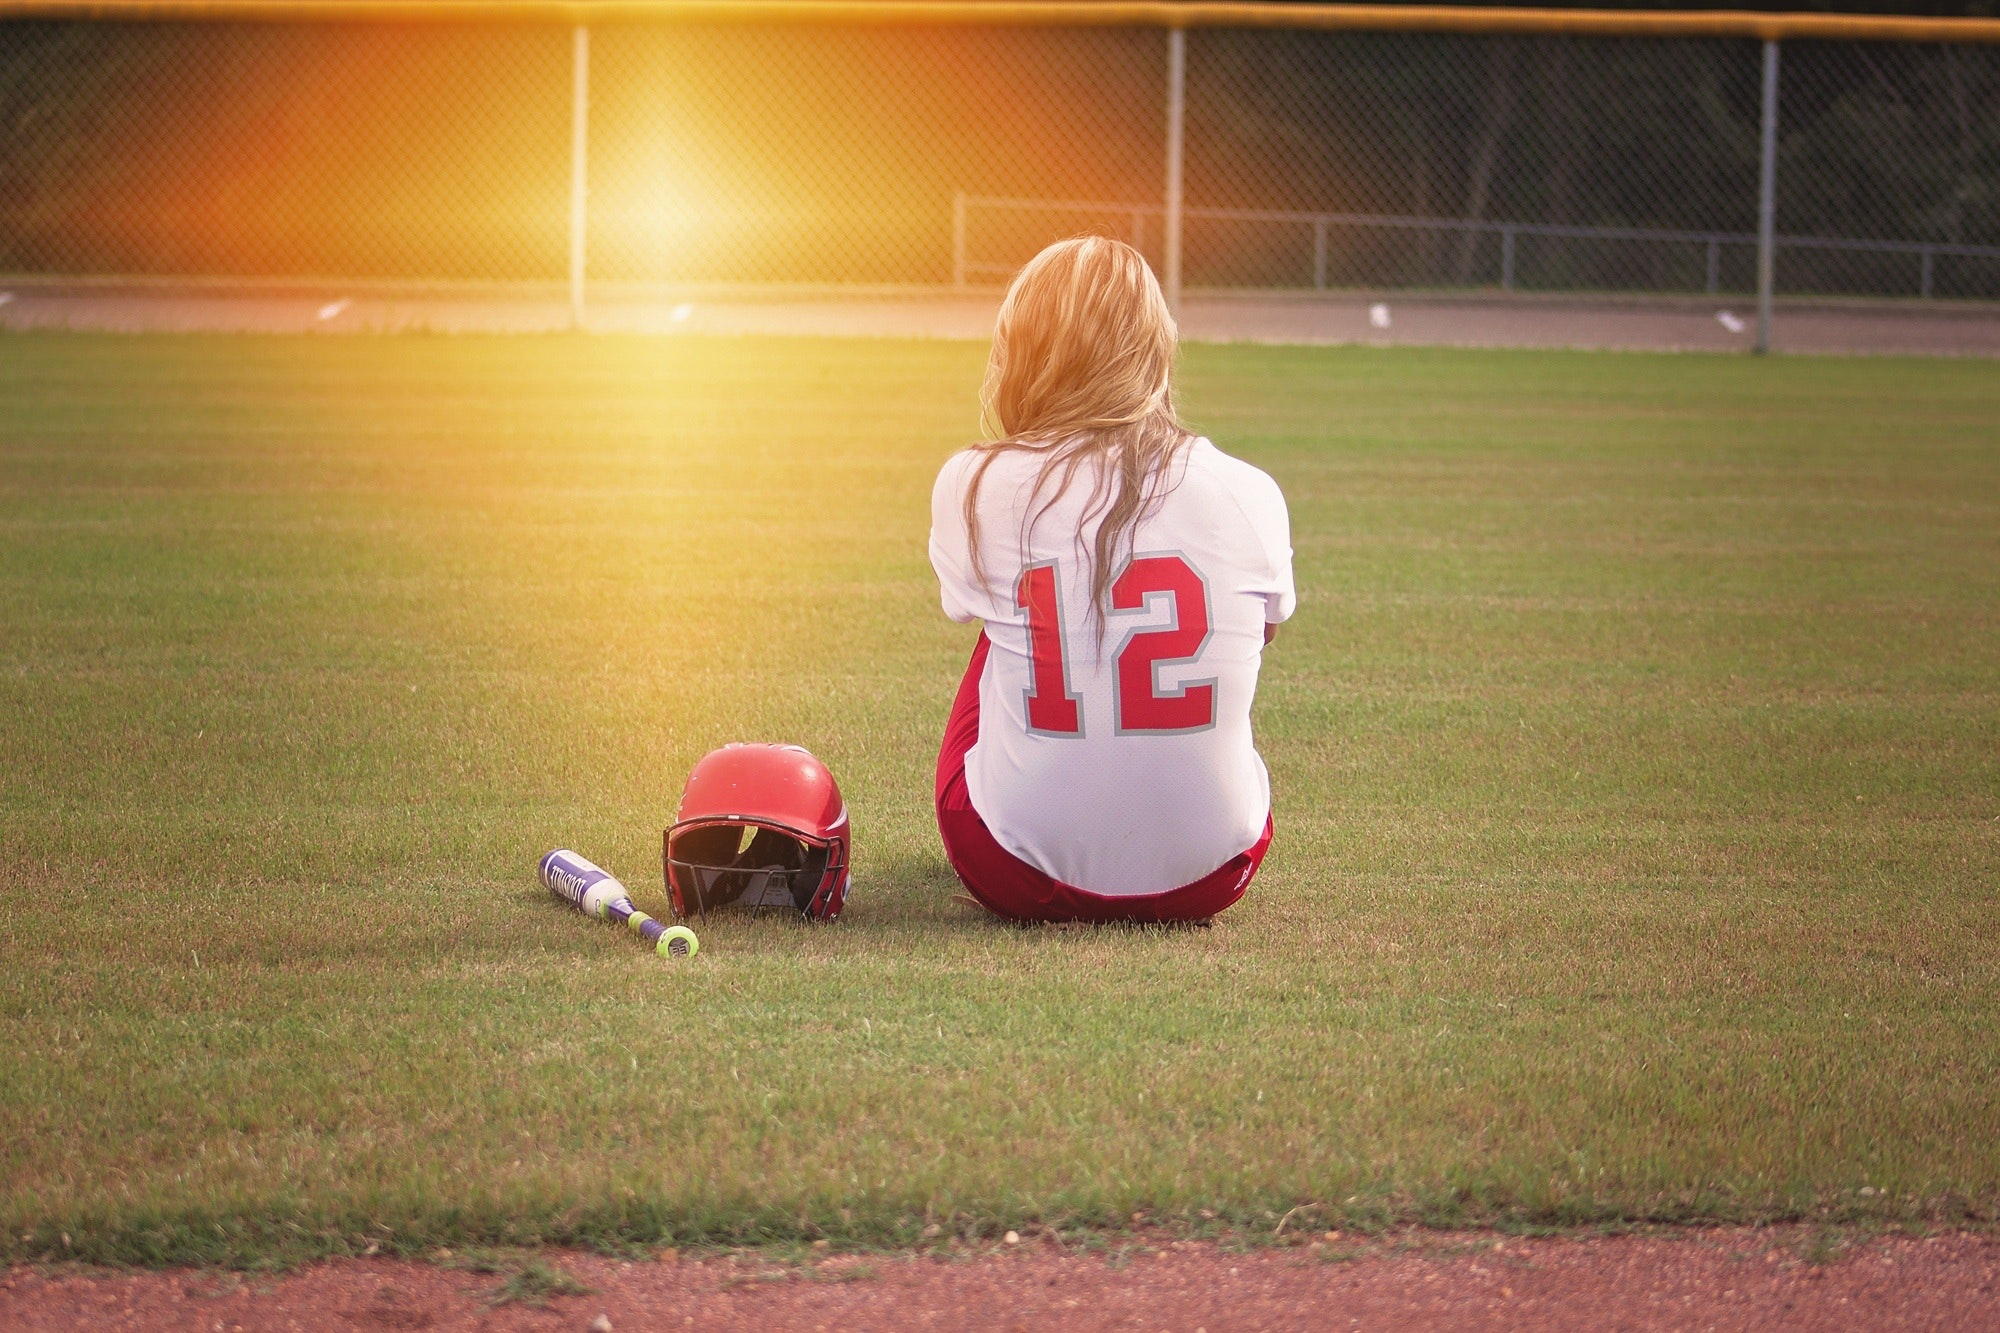 Female baseball player sitting on grass field beside helmet and baseball bat photo